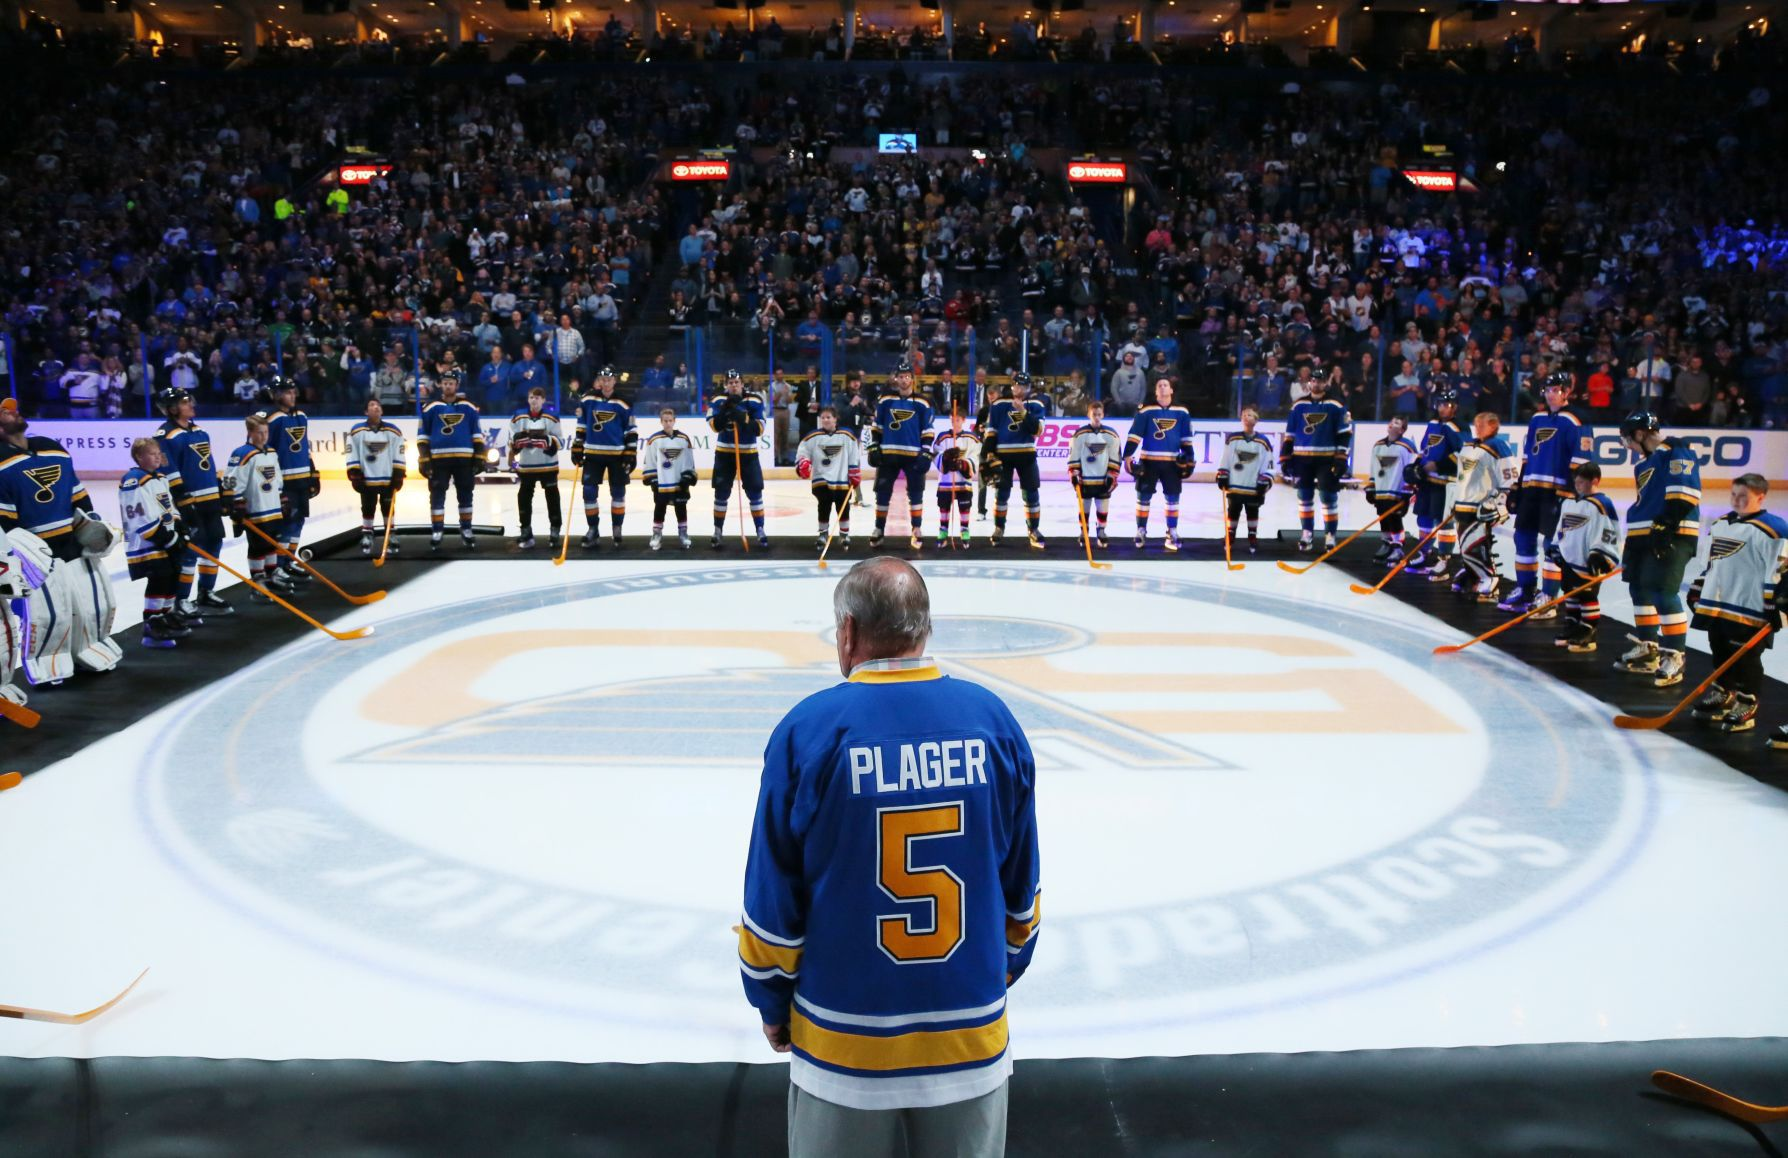 Ortiz: As Usual, Plager Gives Blues Good Advice